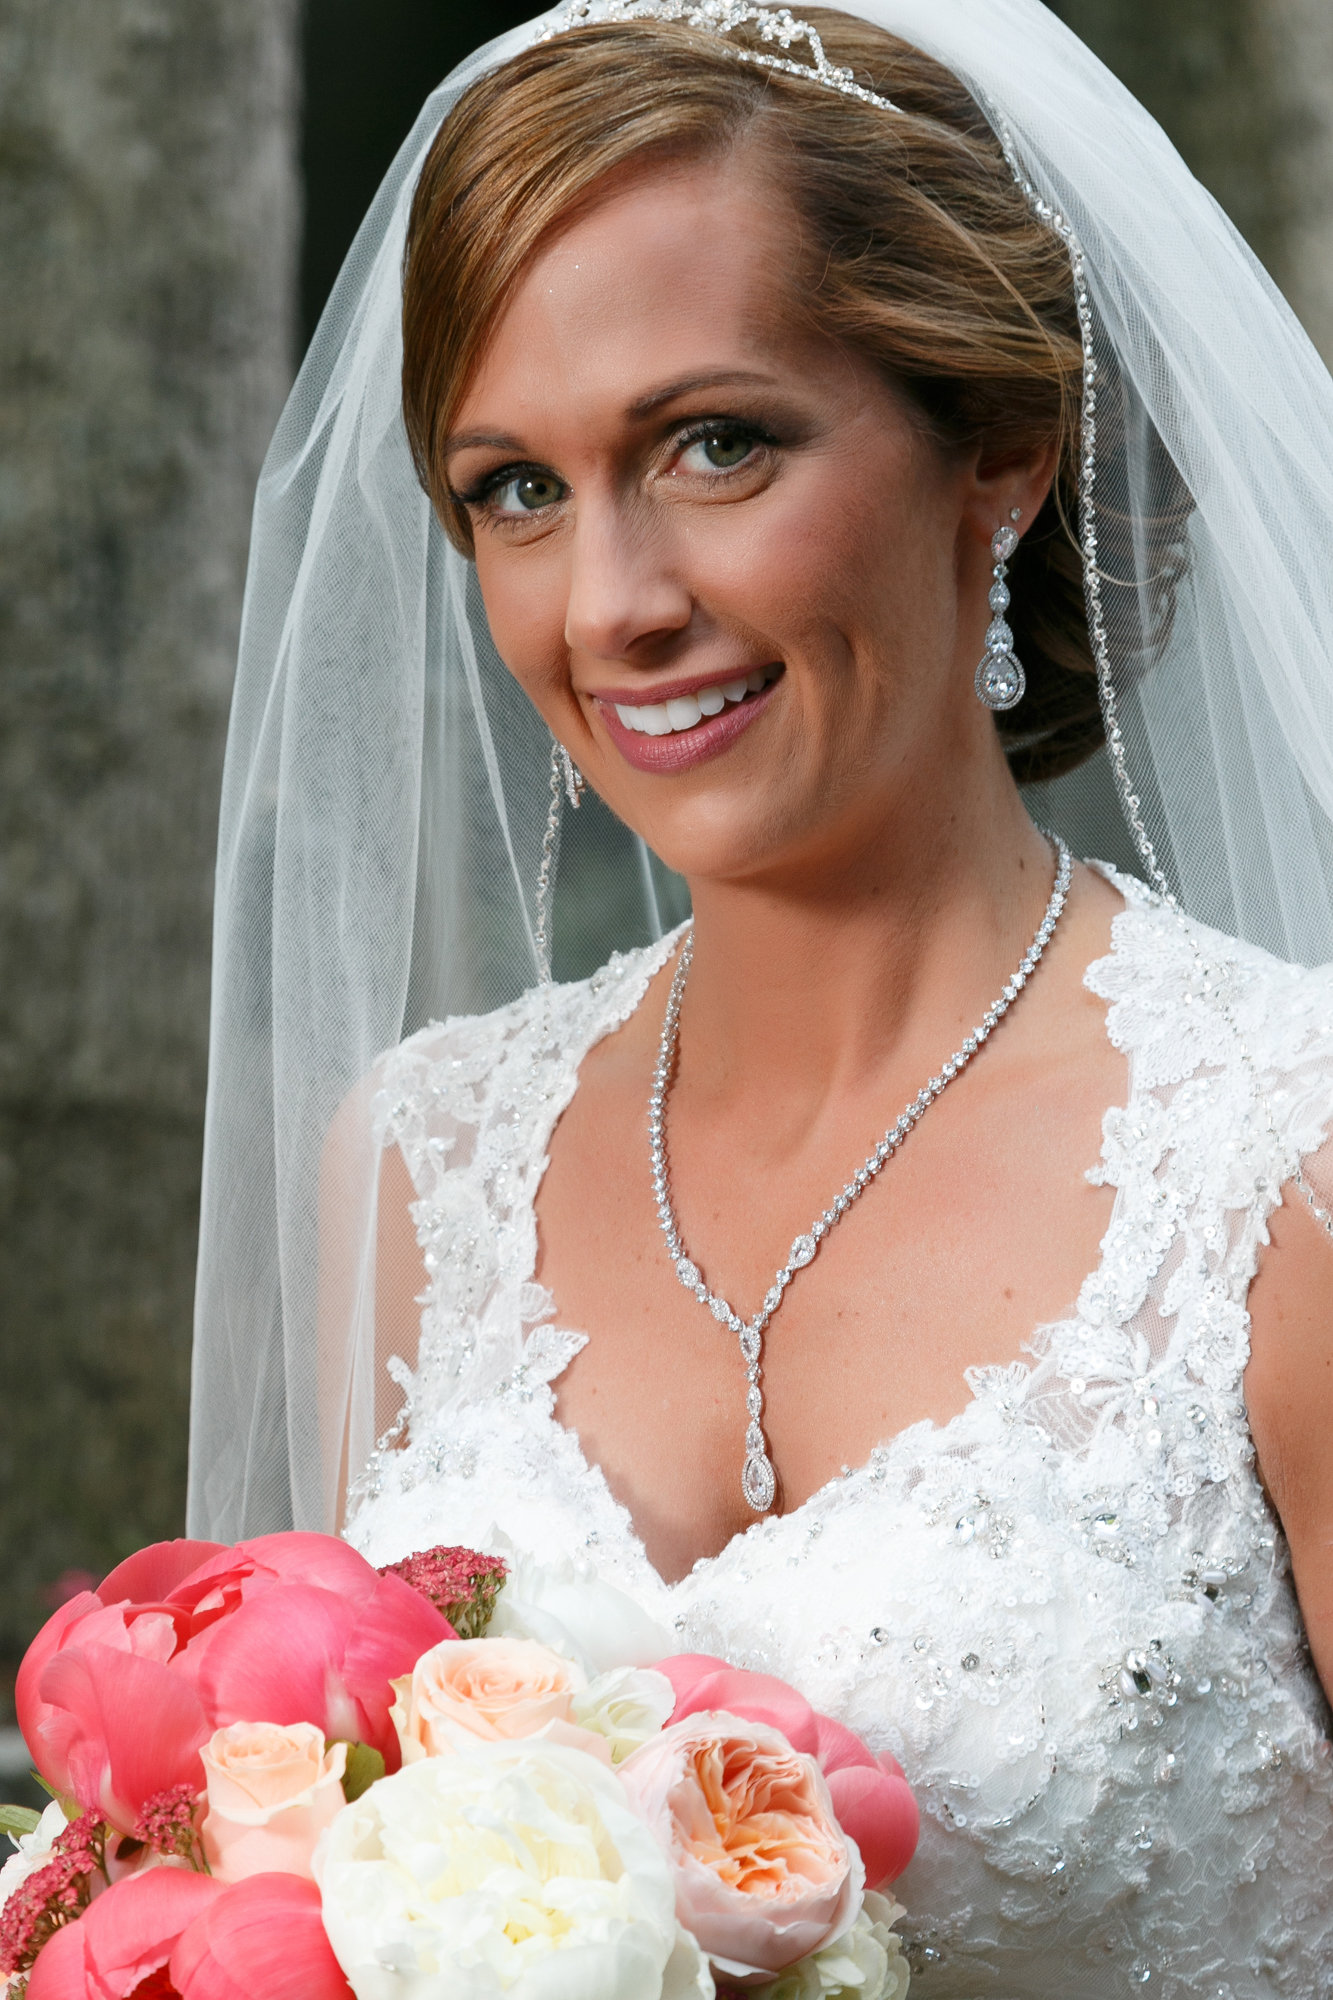 Melissa smiles in wedding gown with bouquet